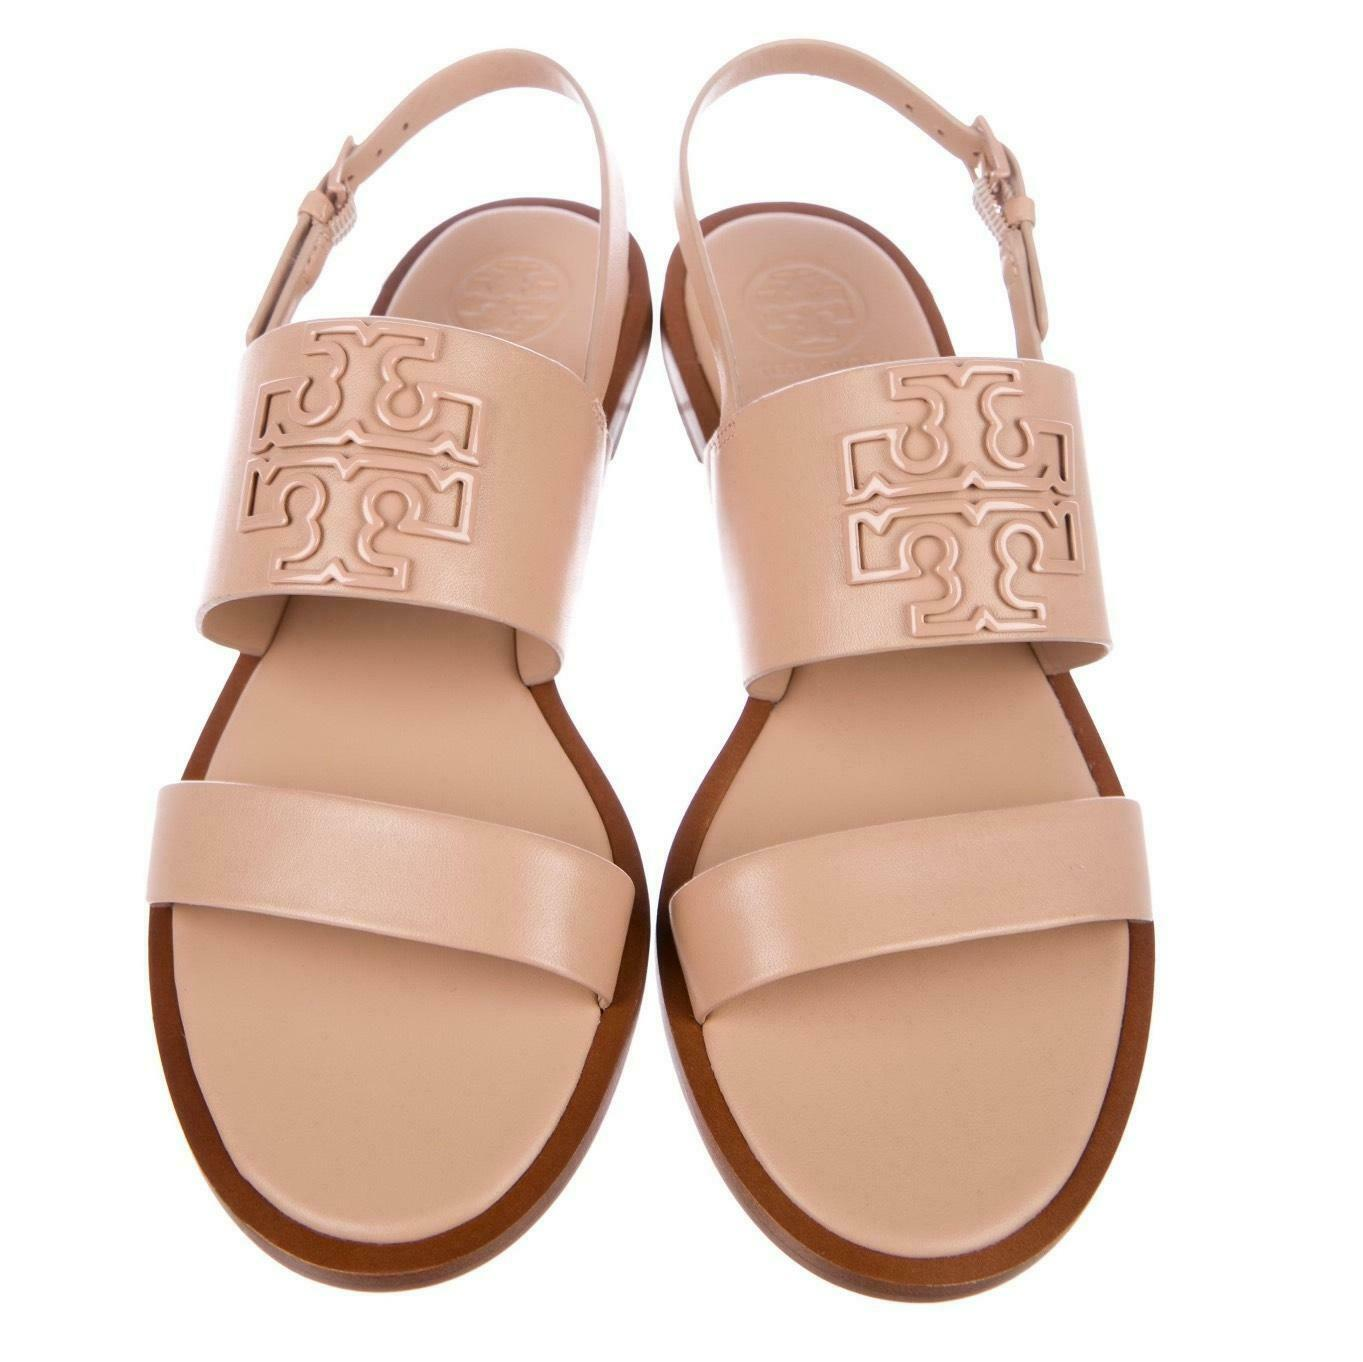 Tory Burch Melinda Powder Coated Flat Two Beands Sandals Slingback Shoes 8 - Click Image to Close